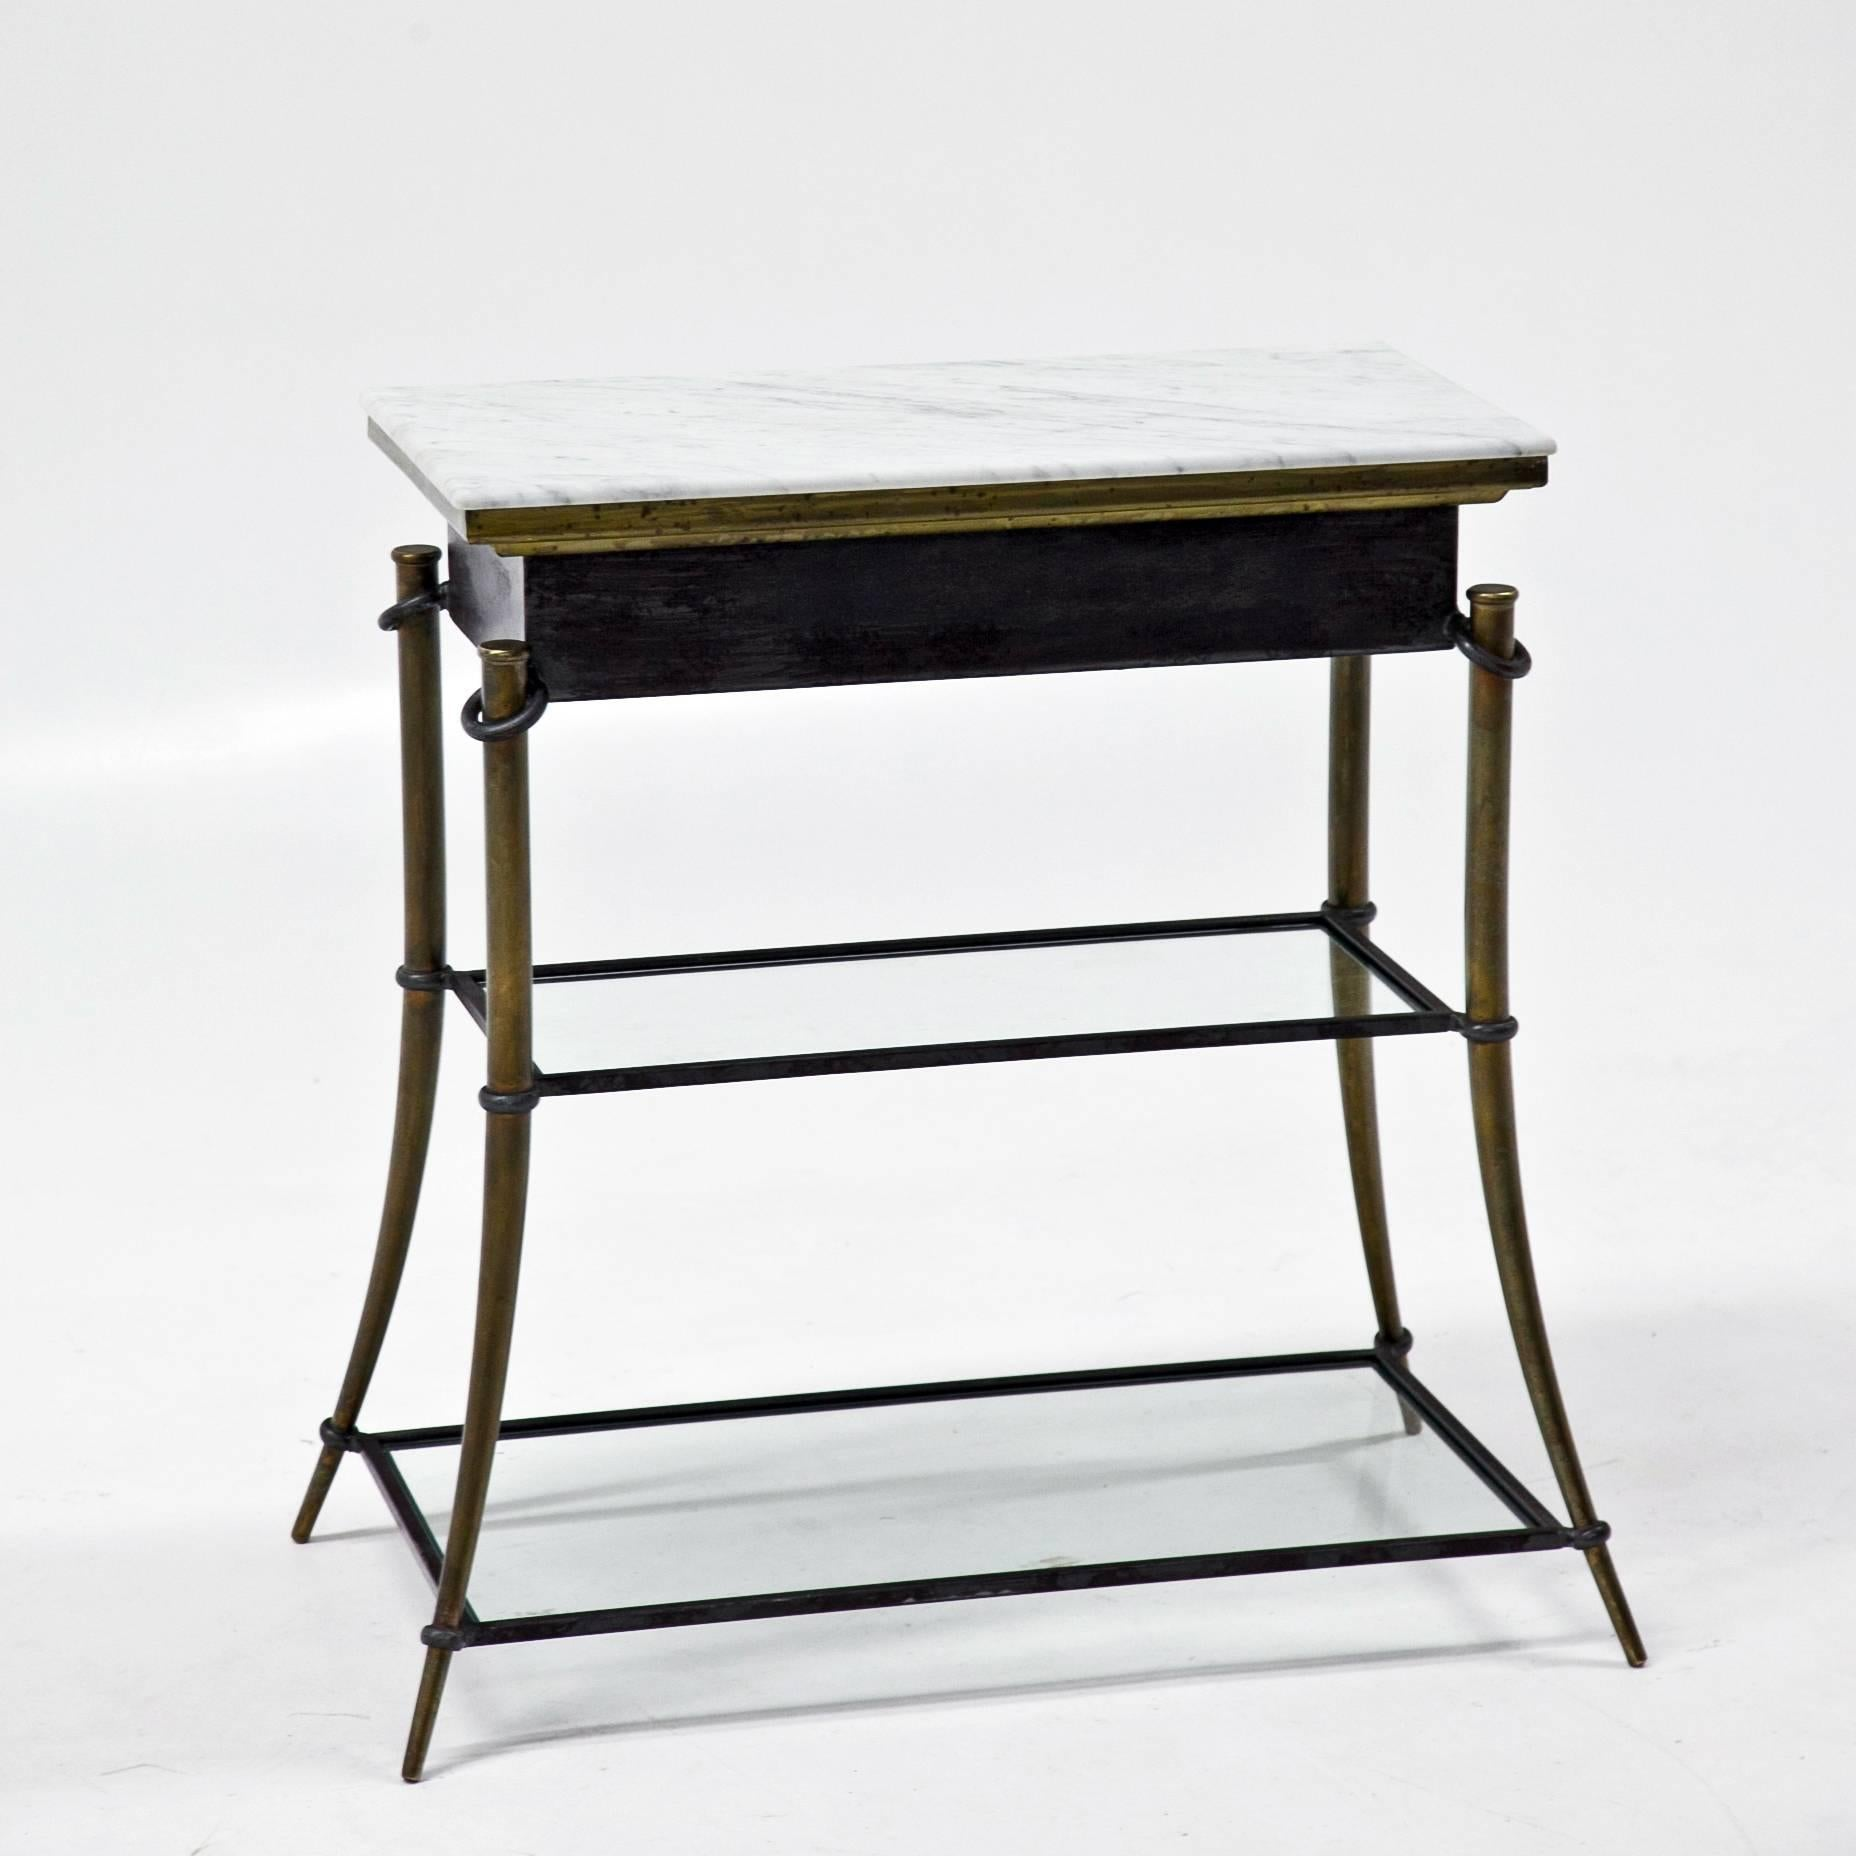 Mid Century Modern Small Console Table, Italy, Mid 20th Century For Sale